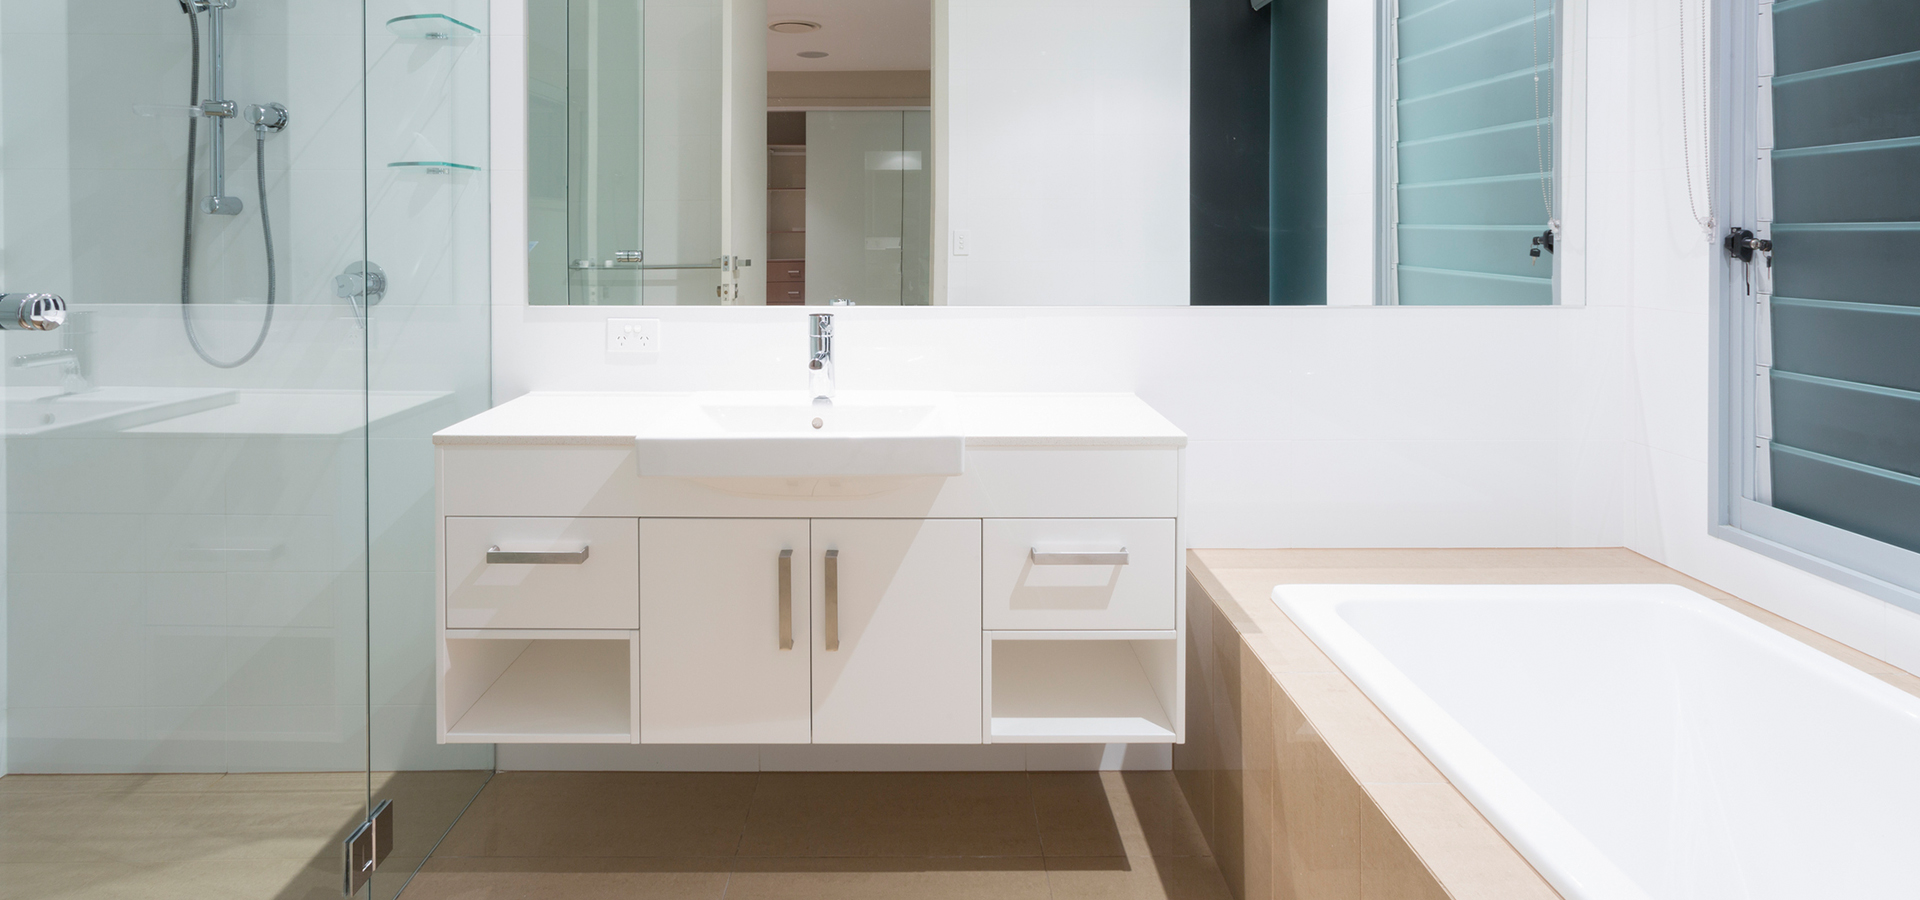 Wet Rooms Manchester Bathroom Designs Free Quotes Wet Rooms Manchester Bathrooms Free